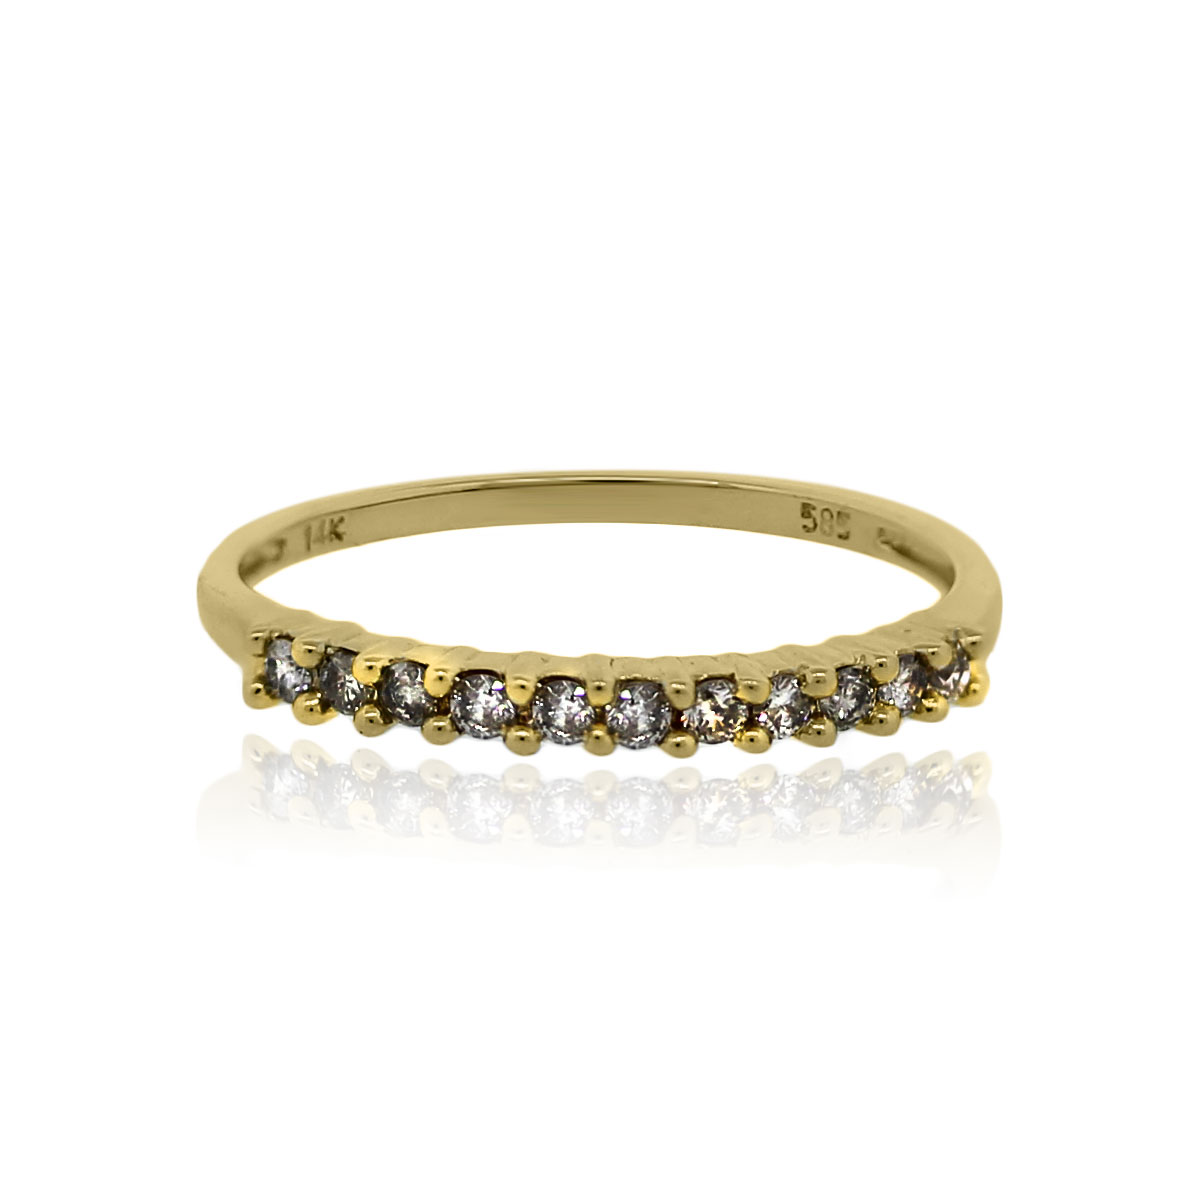 You are viewing this 14k Yellow Gold 0.20ctw Round Brilliant Diamond Band Ring